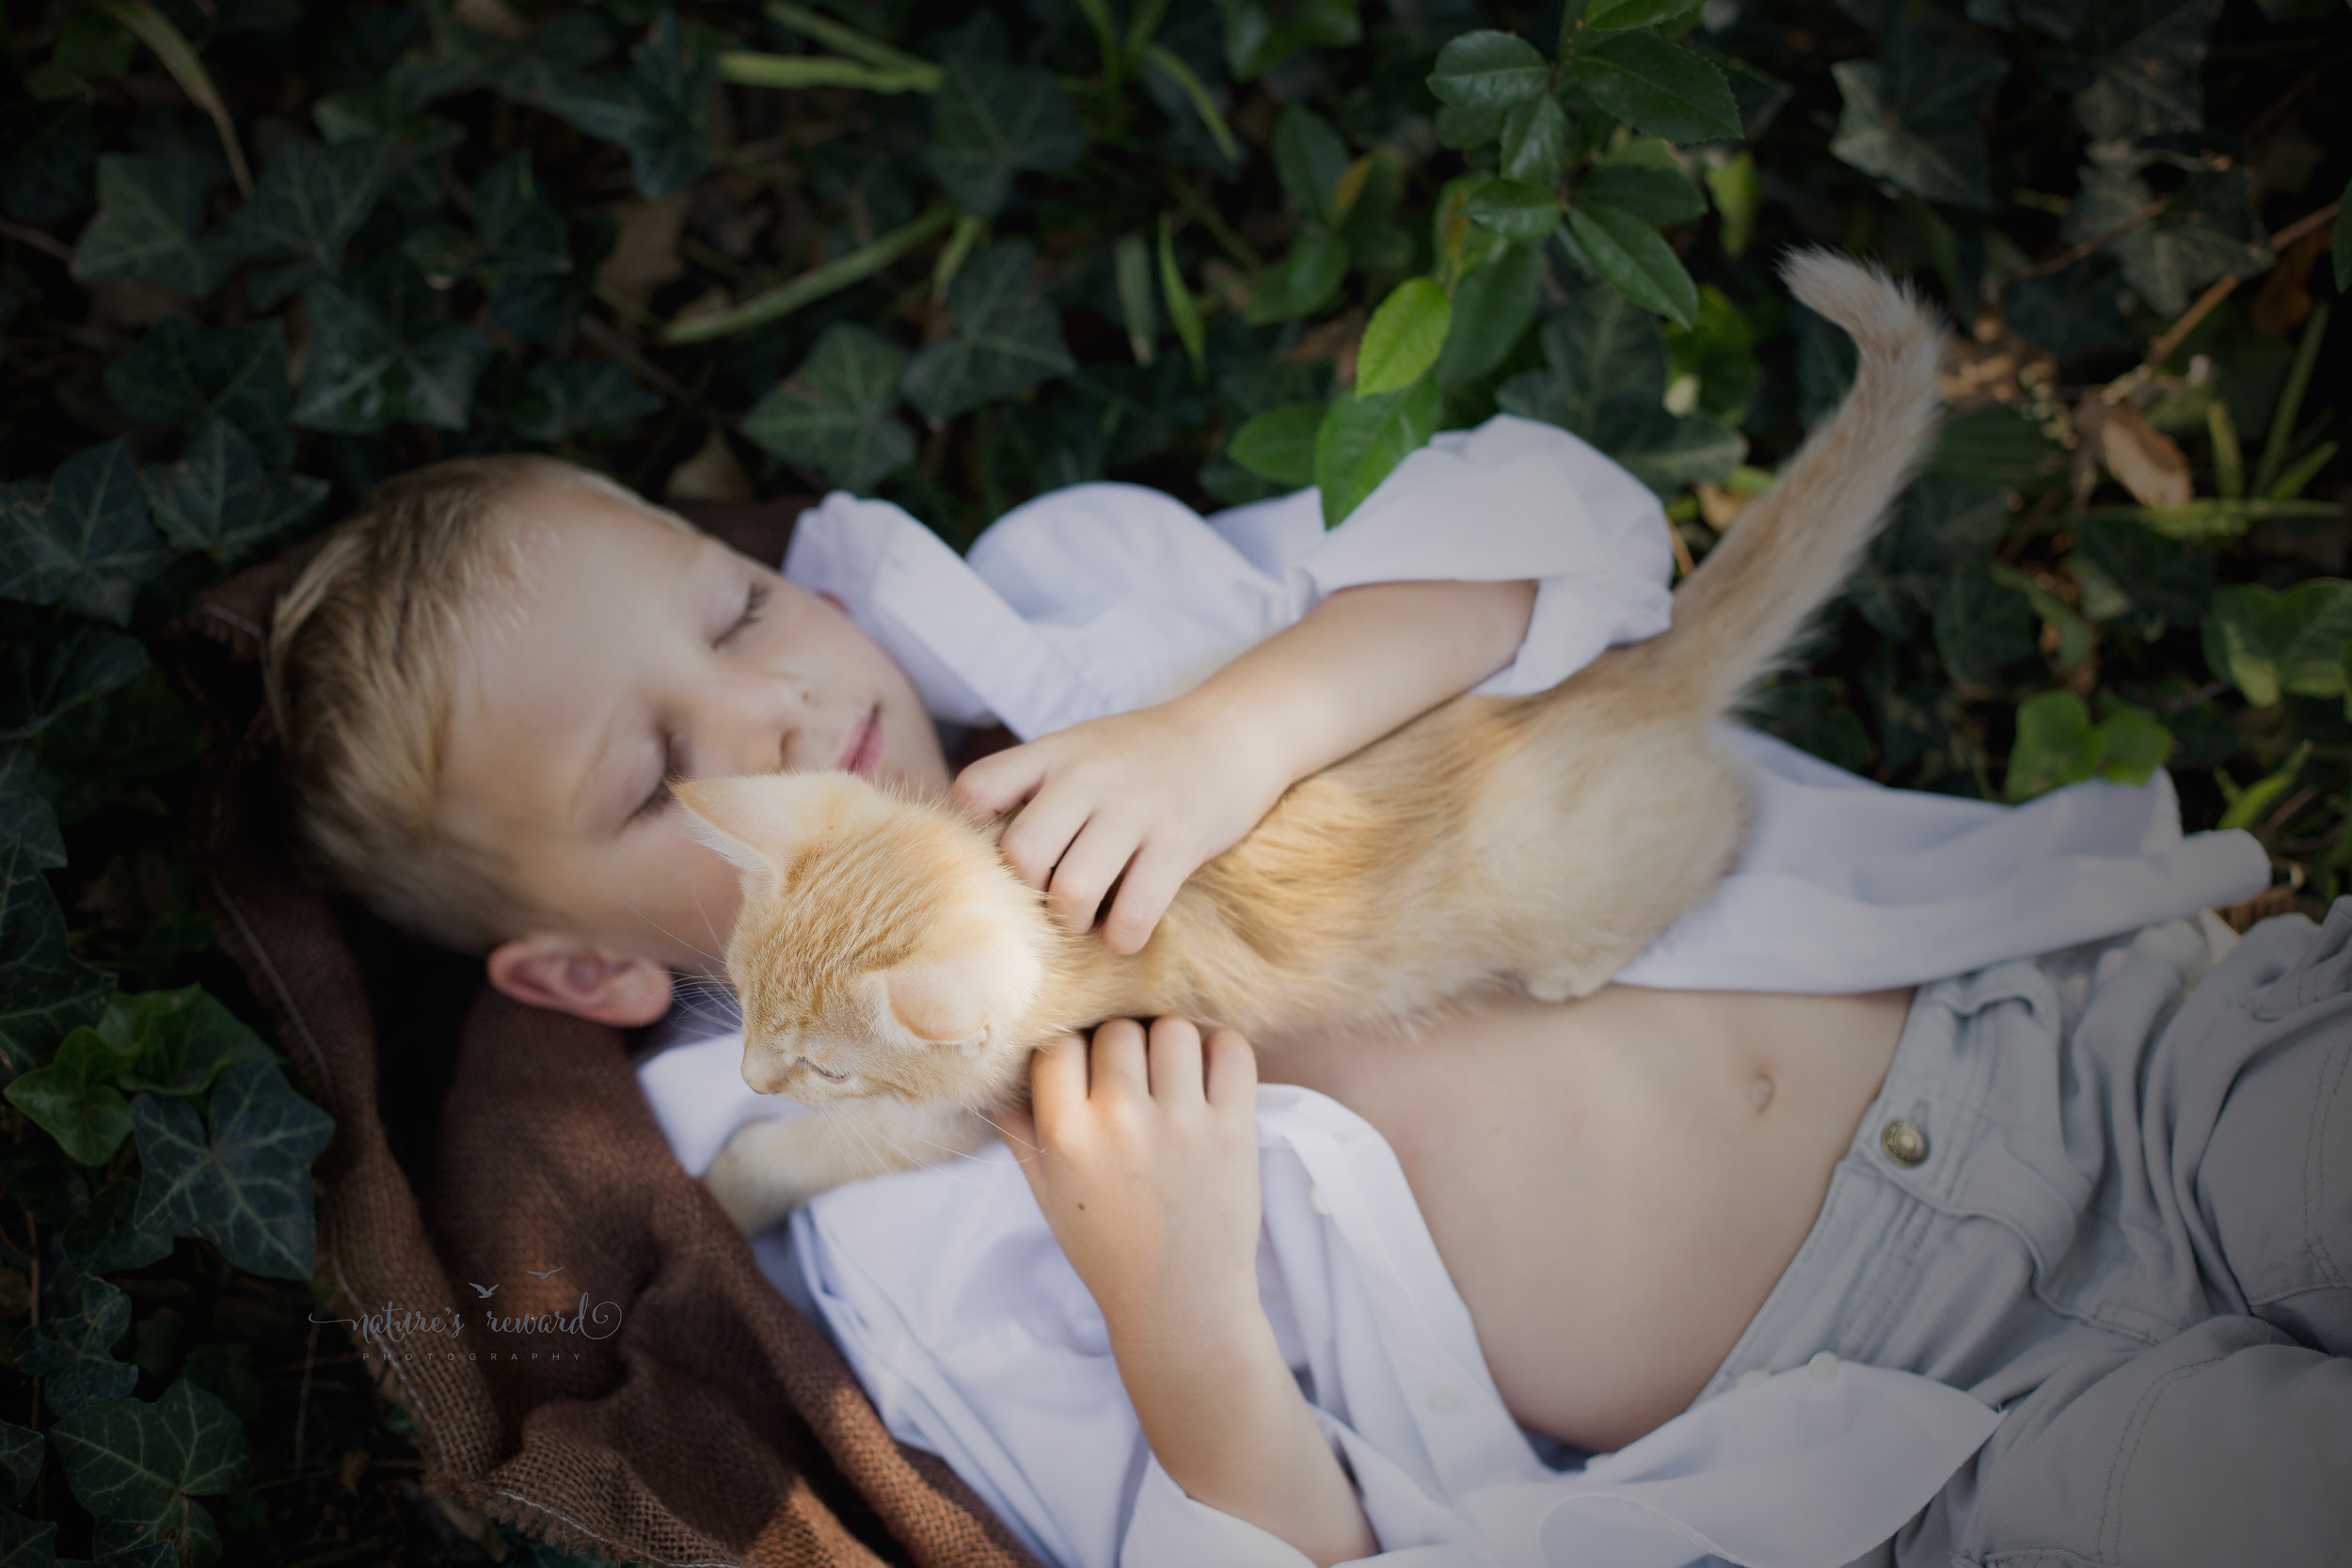 This little boy kitten laid out on Caden and his fluffy hair caught the light and and even in the soft shadow of the morning light Caden's beautiful skin glowed.